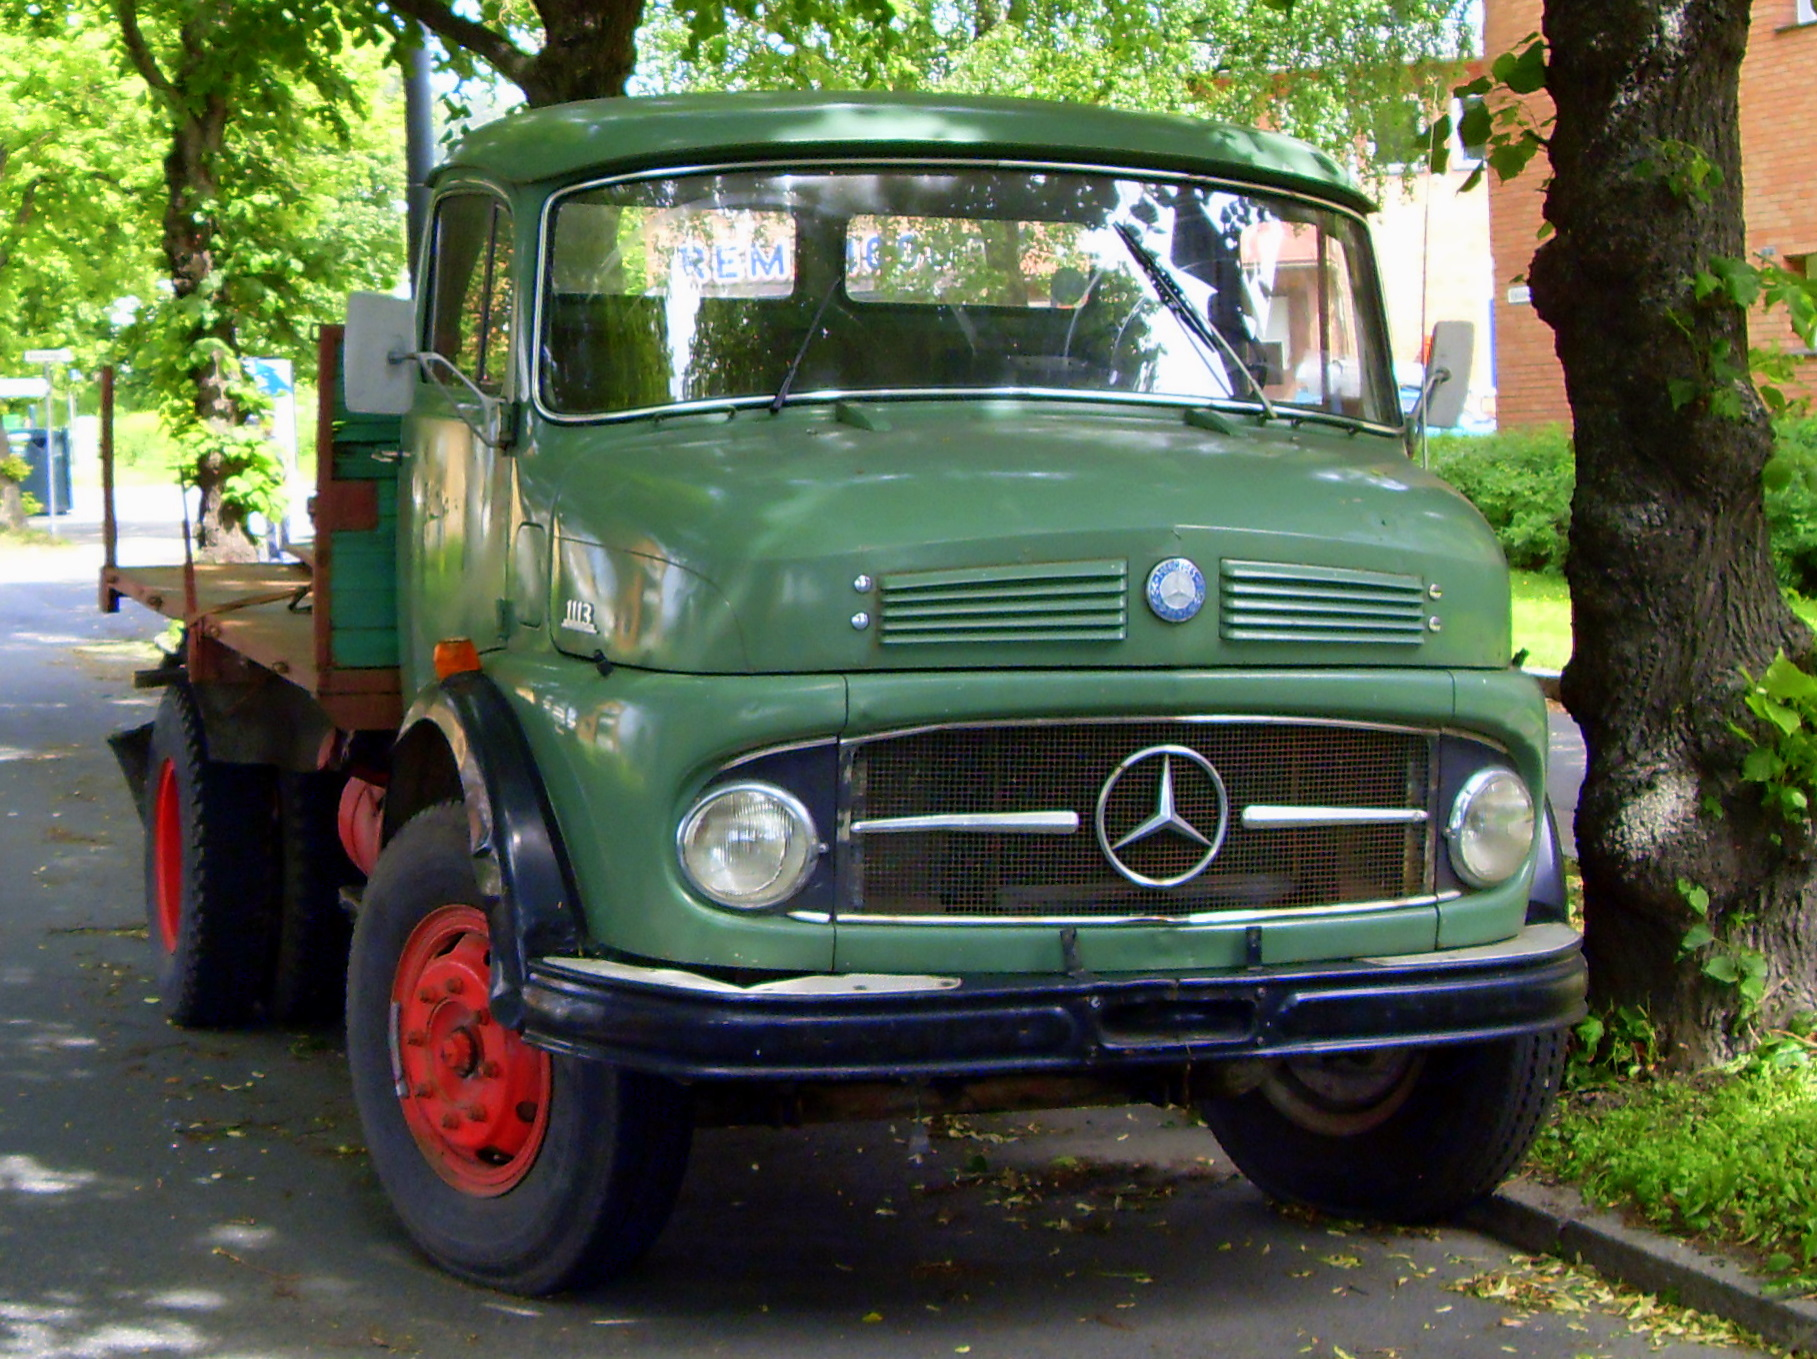 File:Oslo - Mercedes-Benz 1113.jpg